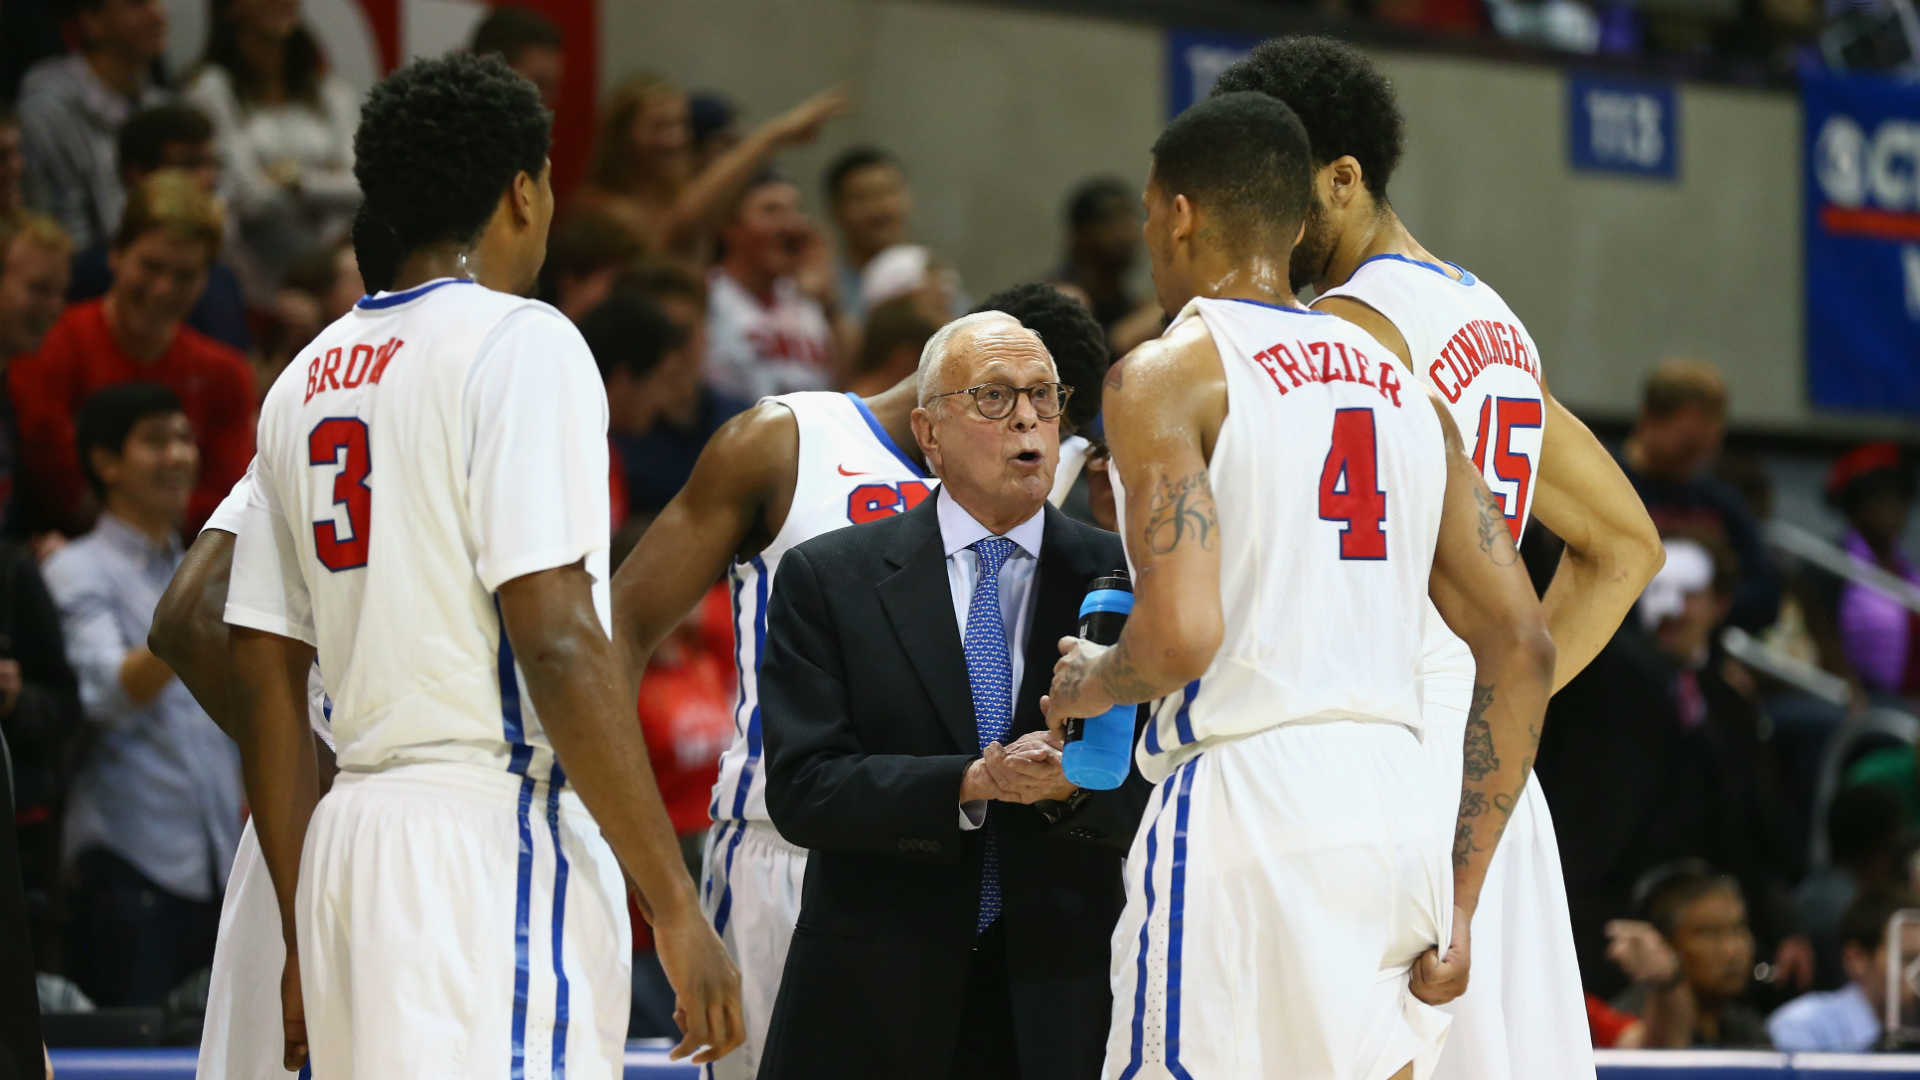 SMU coach Larry Brown